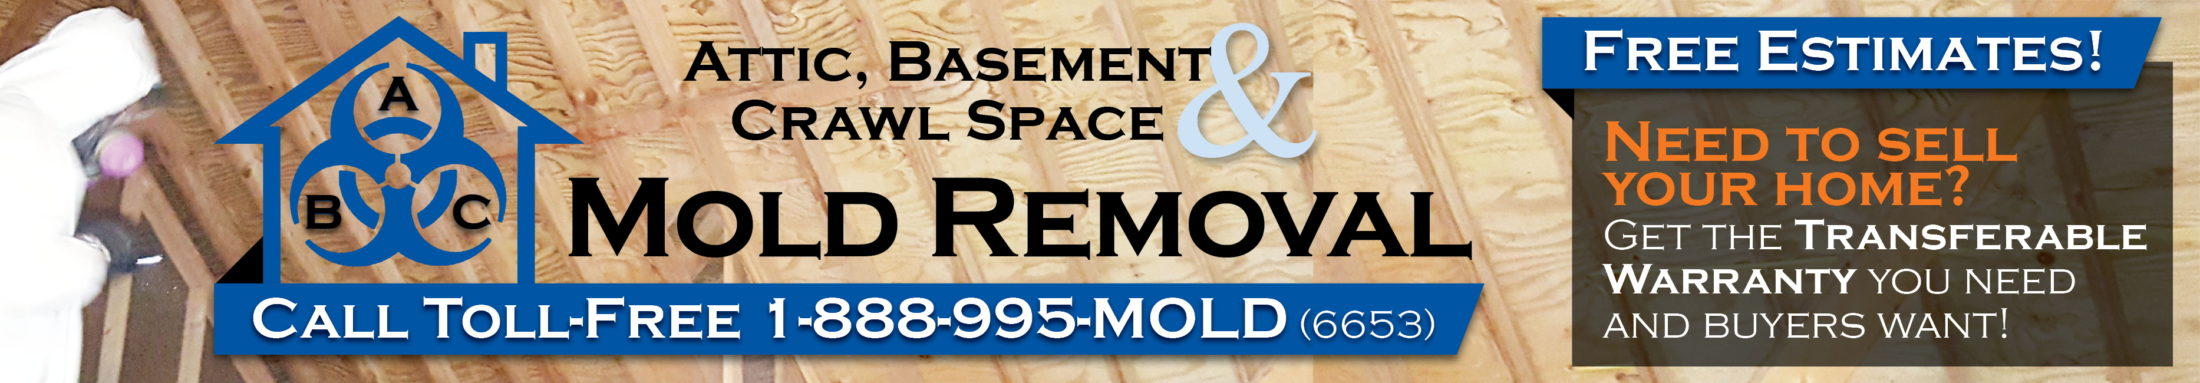 ABC Mold Removal - Attic Basement and Crawl Space Mold Remediation Company